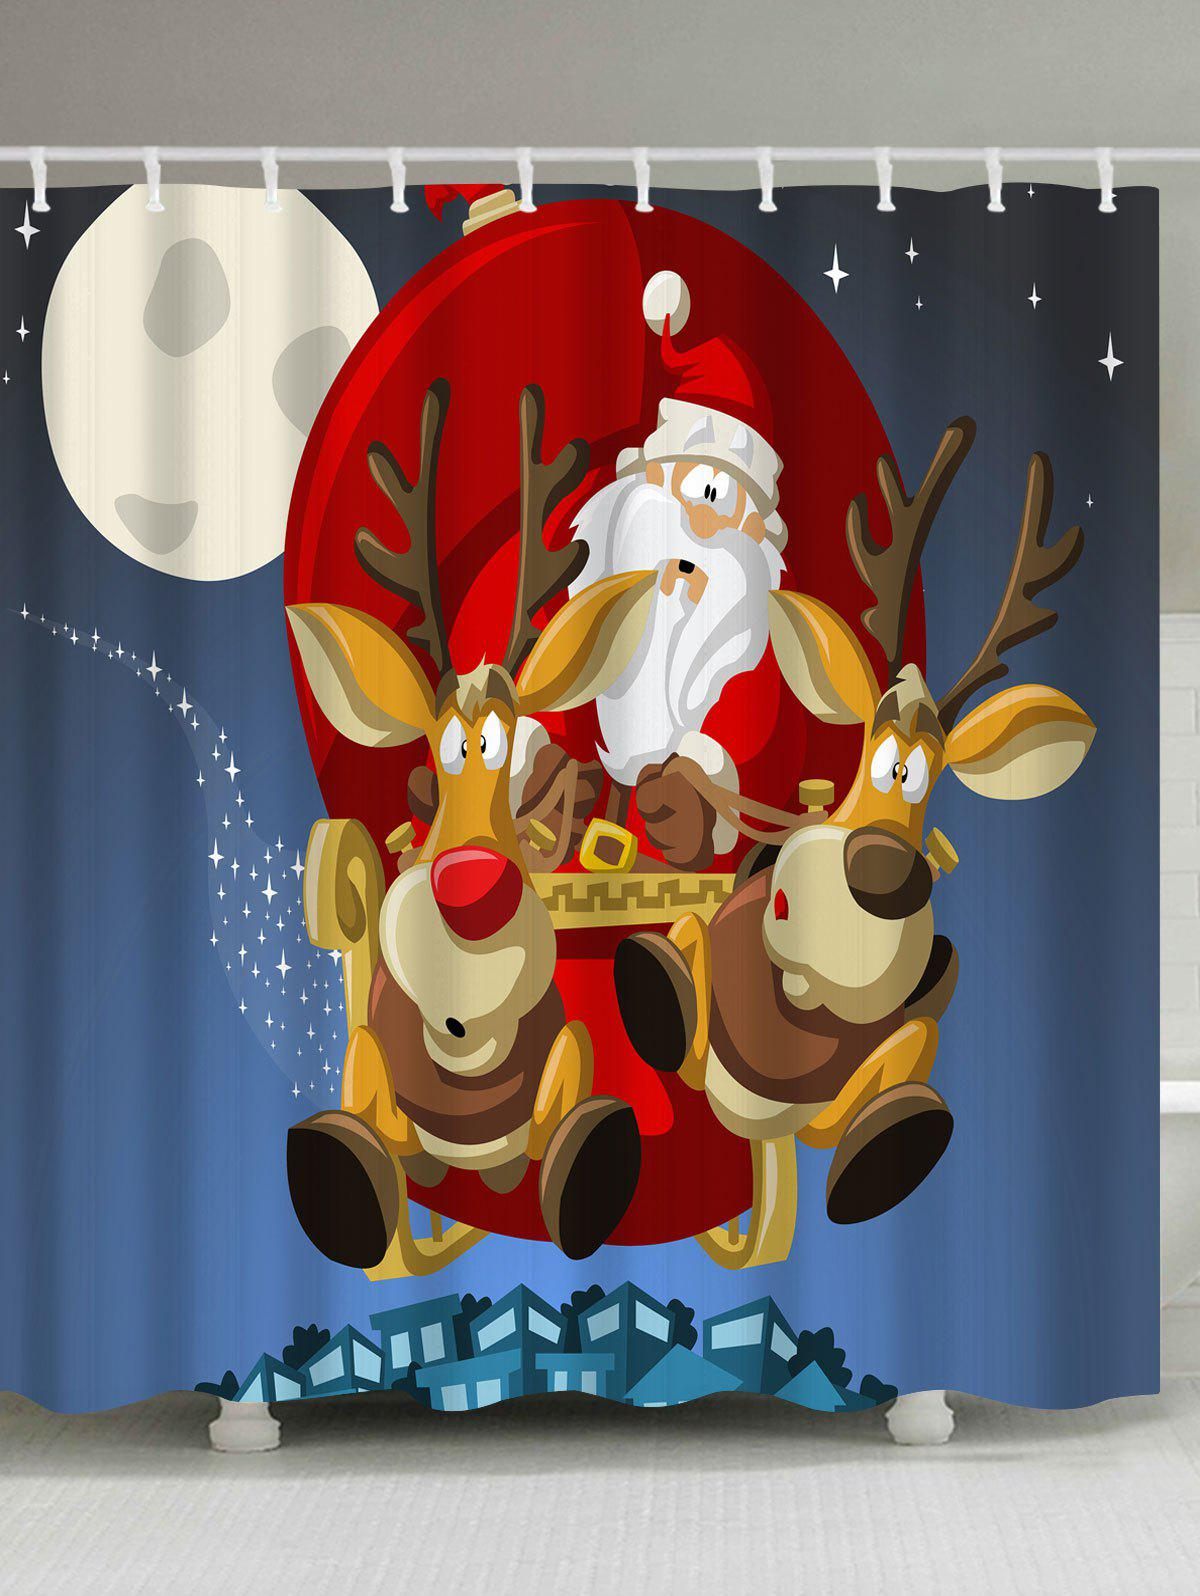 Polyester Waterproof Merry Christmas Cartoon Washroom CurtainHOME<br><br>Size: W59 INCH * L71 INCH; Color: BLUE; Products Type: Shower Curtains; Materials: Polyester; Pattern: Elk,Santa Claus; Style: Festival; Number of Hook Holes: W59 inch*L71 inch: 10; W71 inch*L71 inch: 12; W71 inch*L79 inch: 12; Package Contents: 1 x Shower Curtain 1 x Hooks (Set);